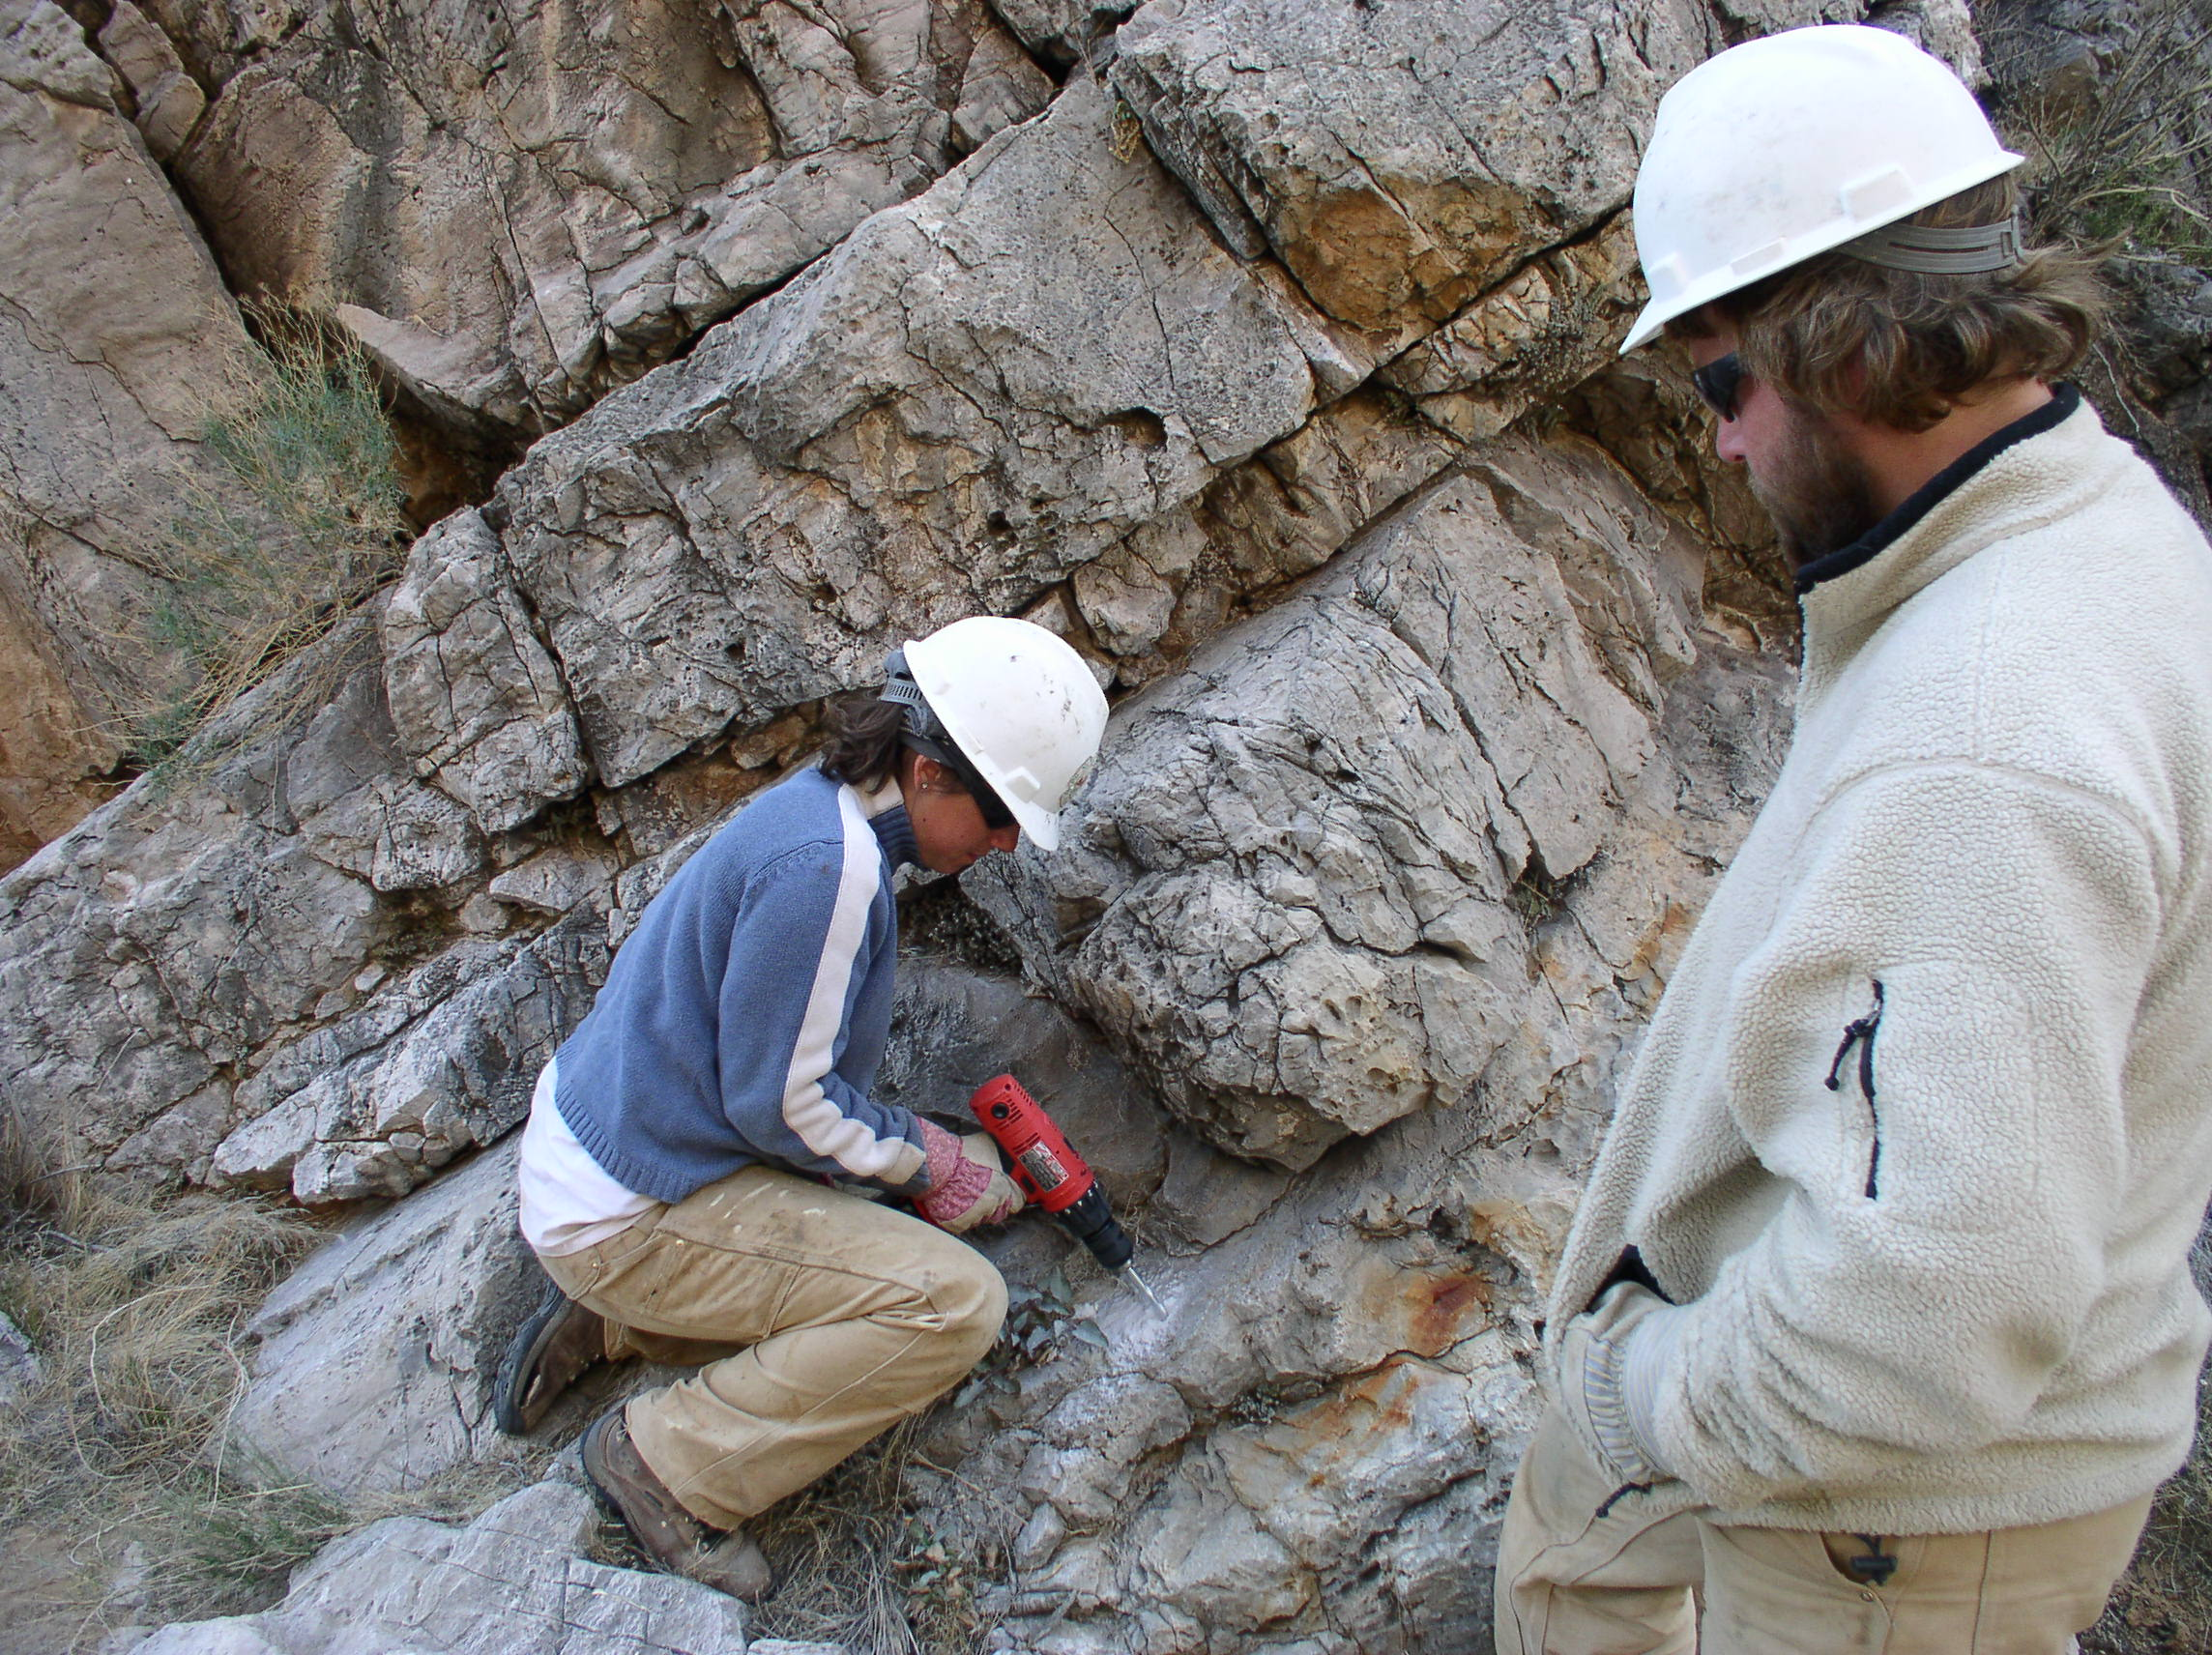 Drilling into rocks to build a fence to prevent ATVs from driving down a canyon.